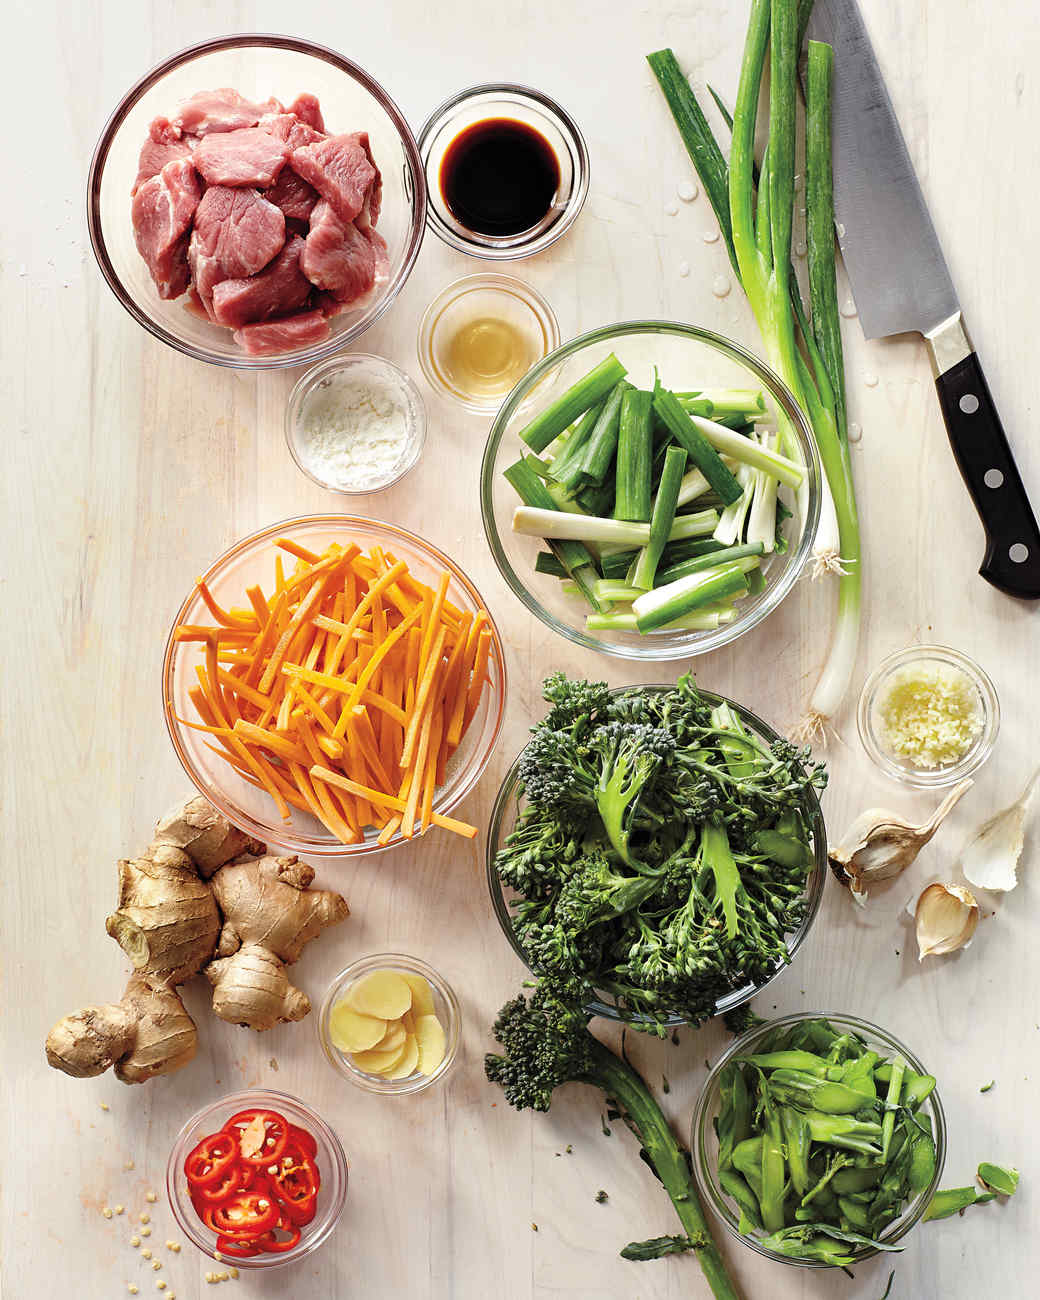 stir-fry-ingredients-046-r-mld110362.jpg